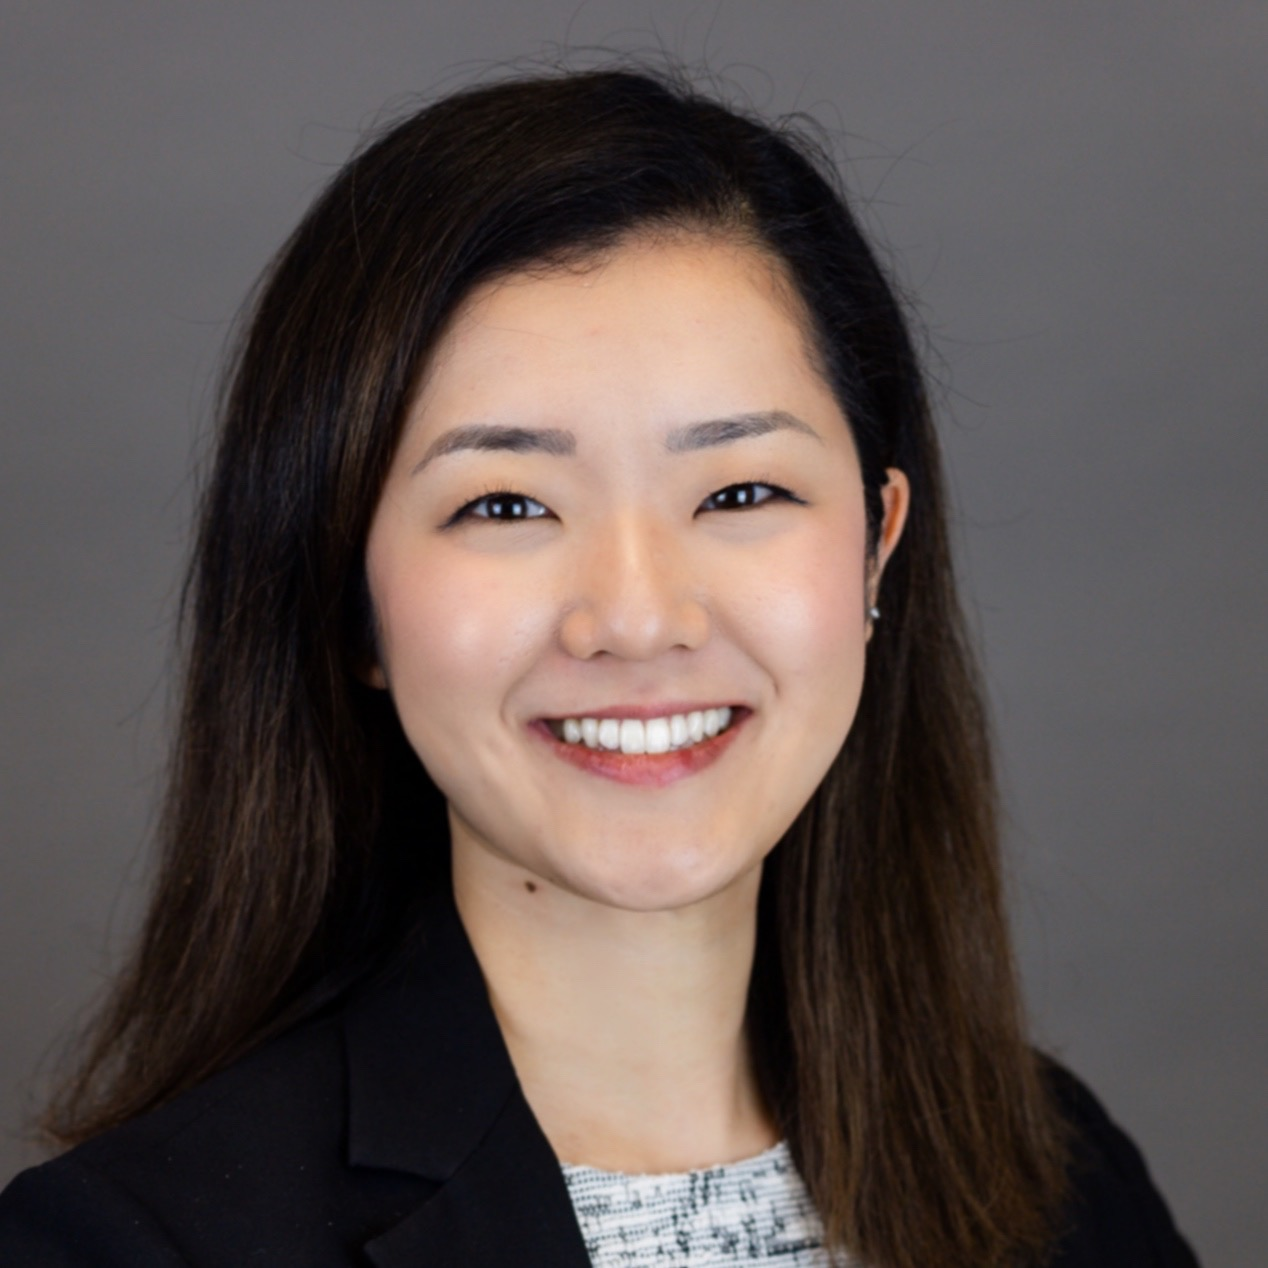 Student Spotlight Second-year UH Law Center student Nakayama takes helm of Asian Law Students Association